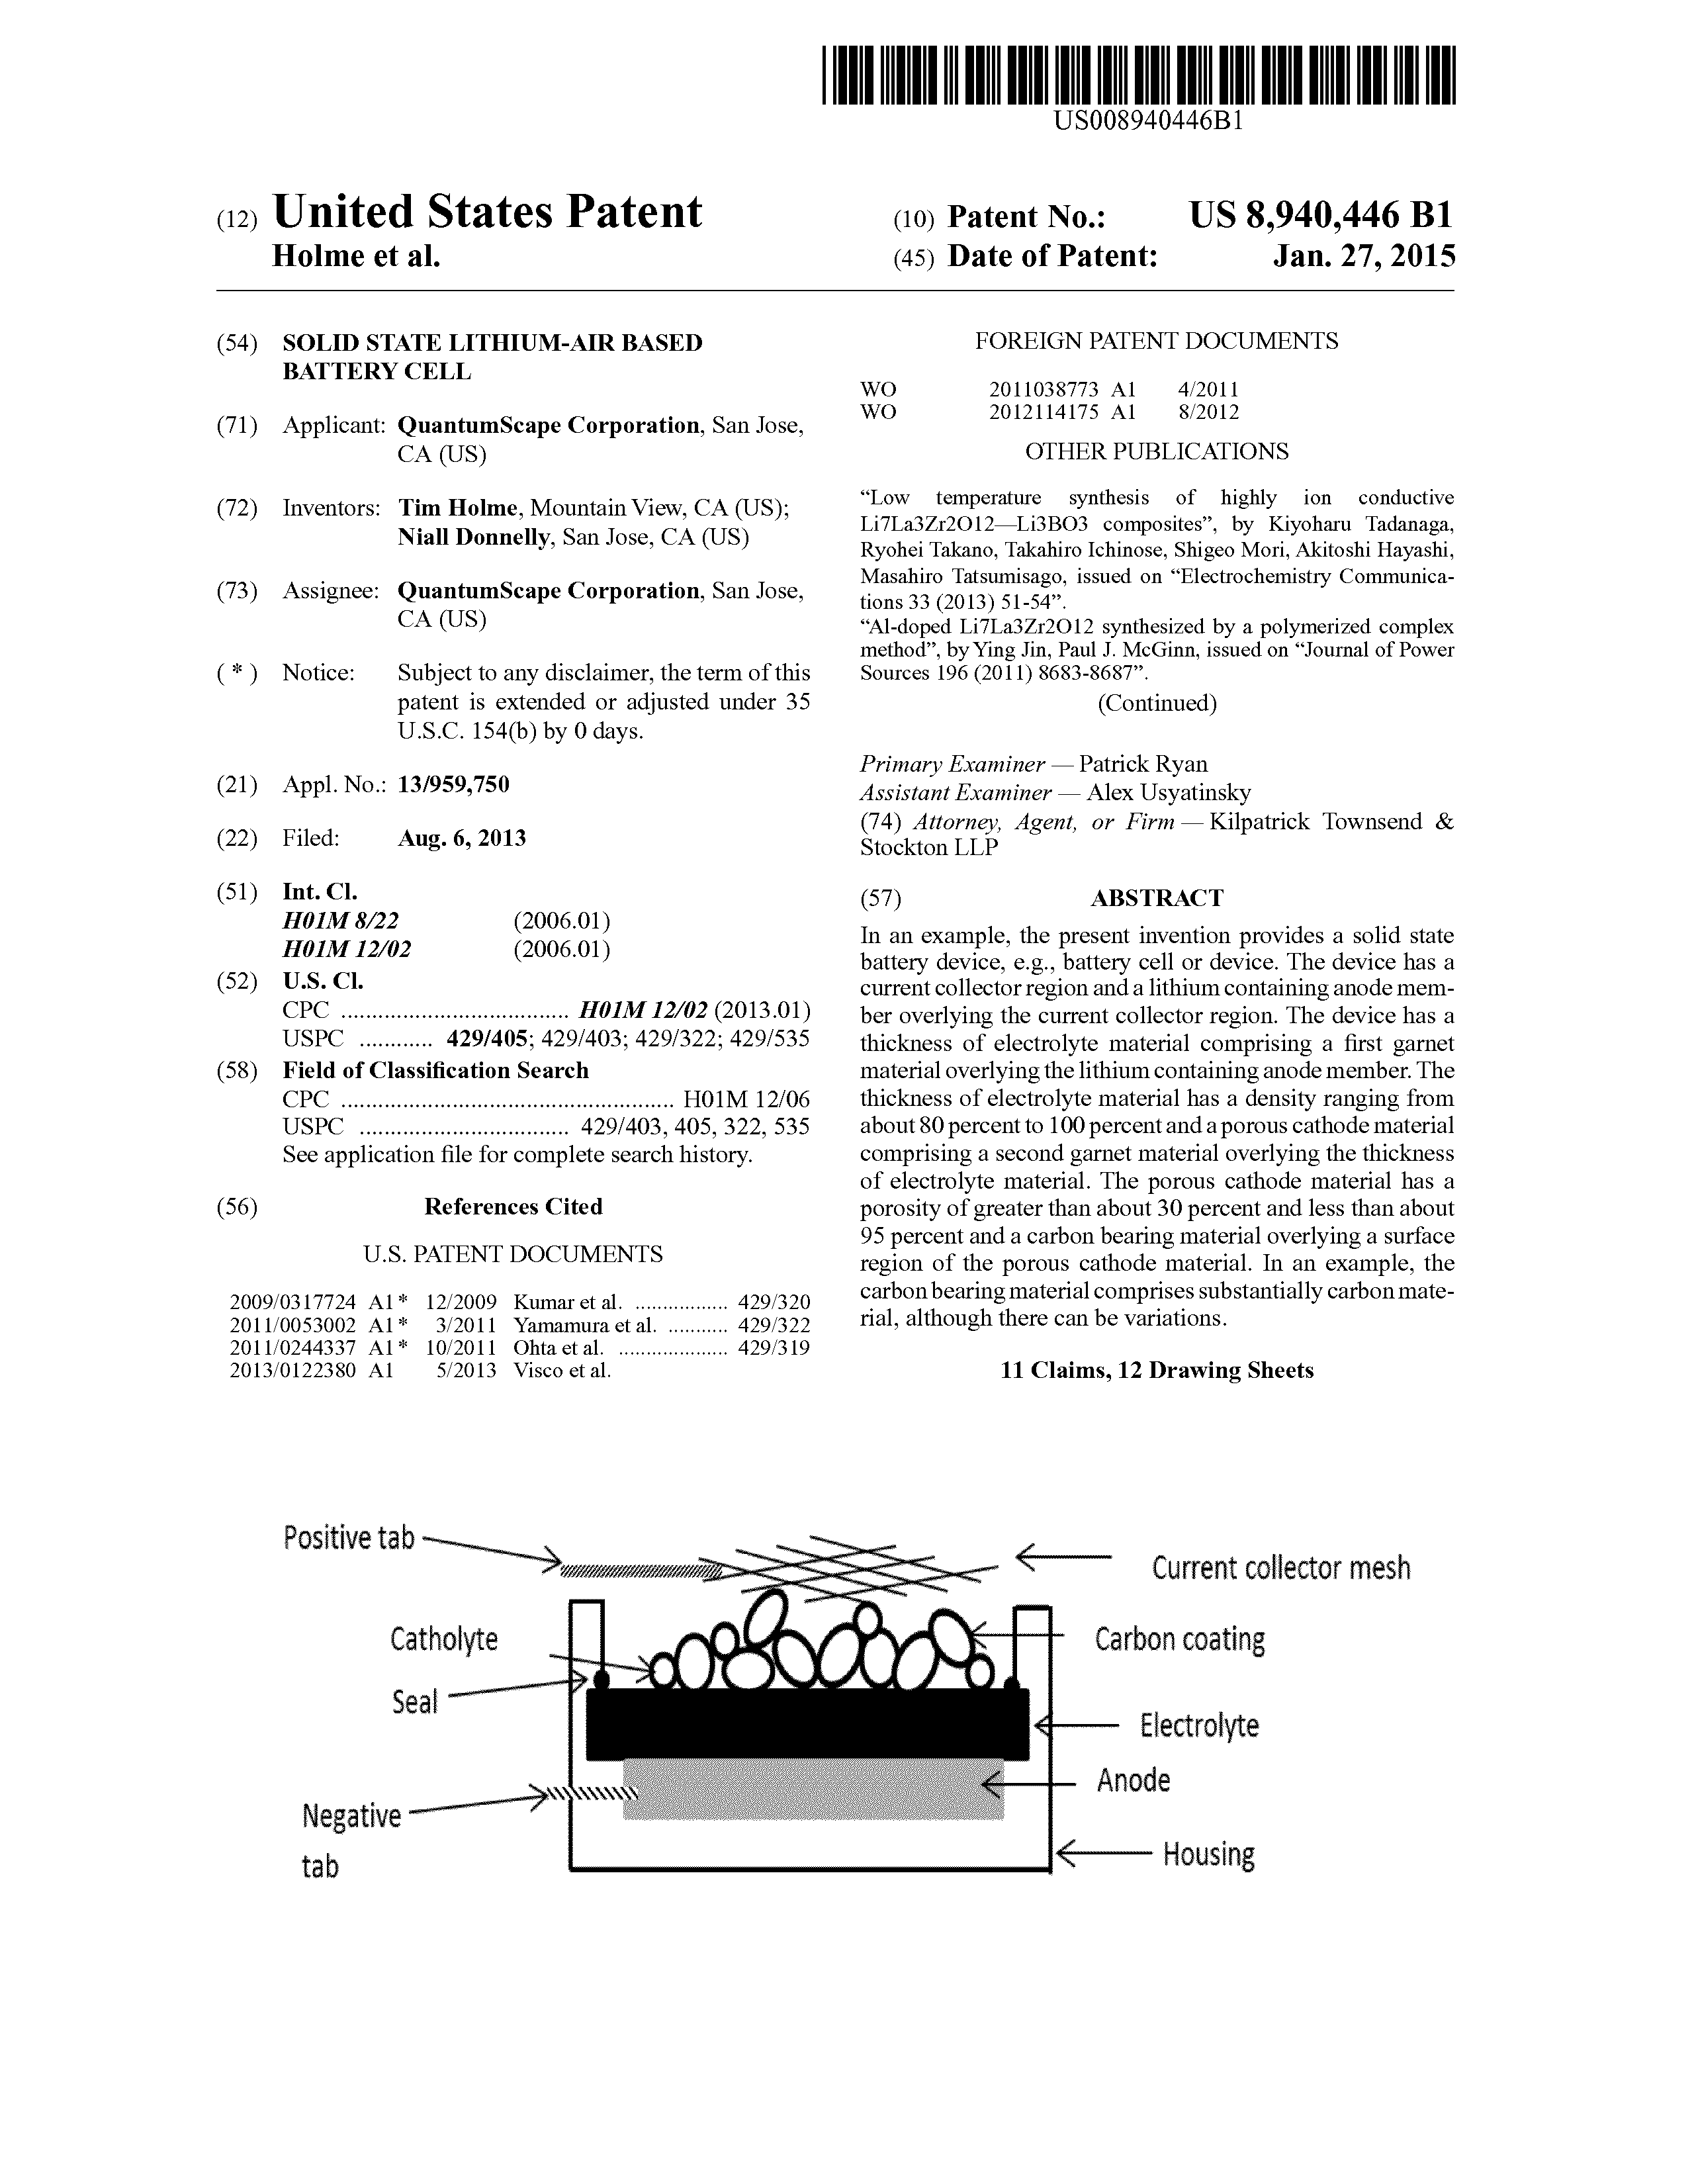 US 8940446 B1 - Solid State Lithium-air Based Battery Cell